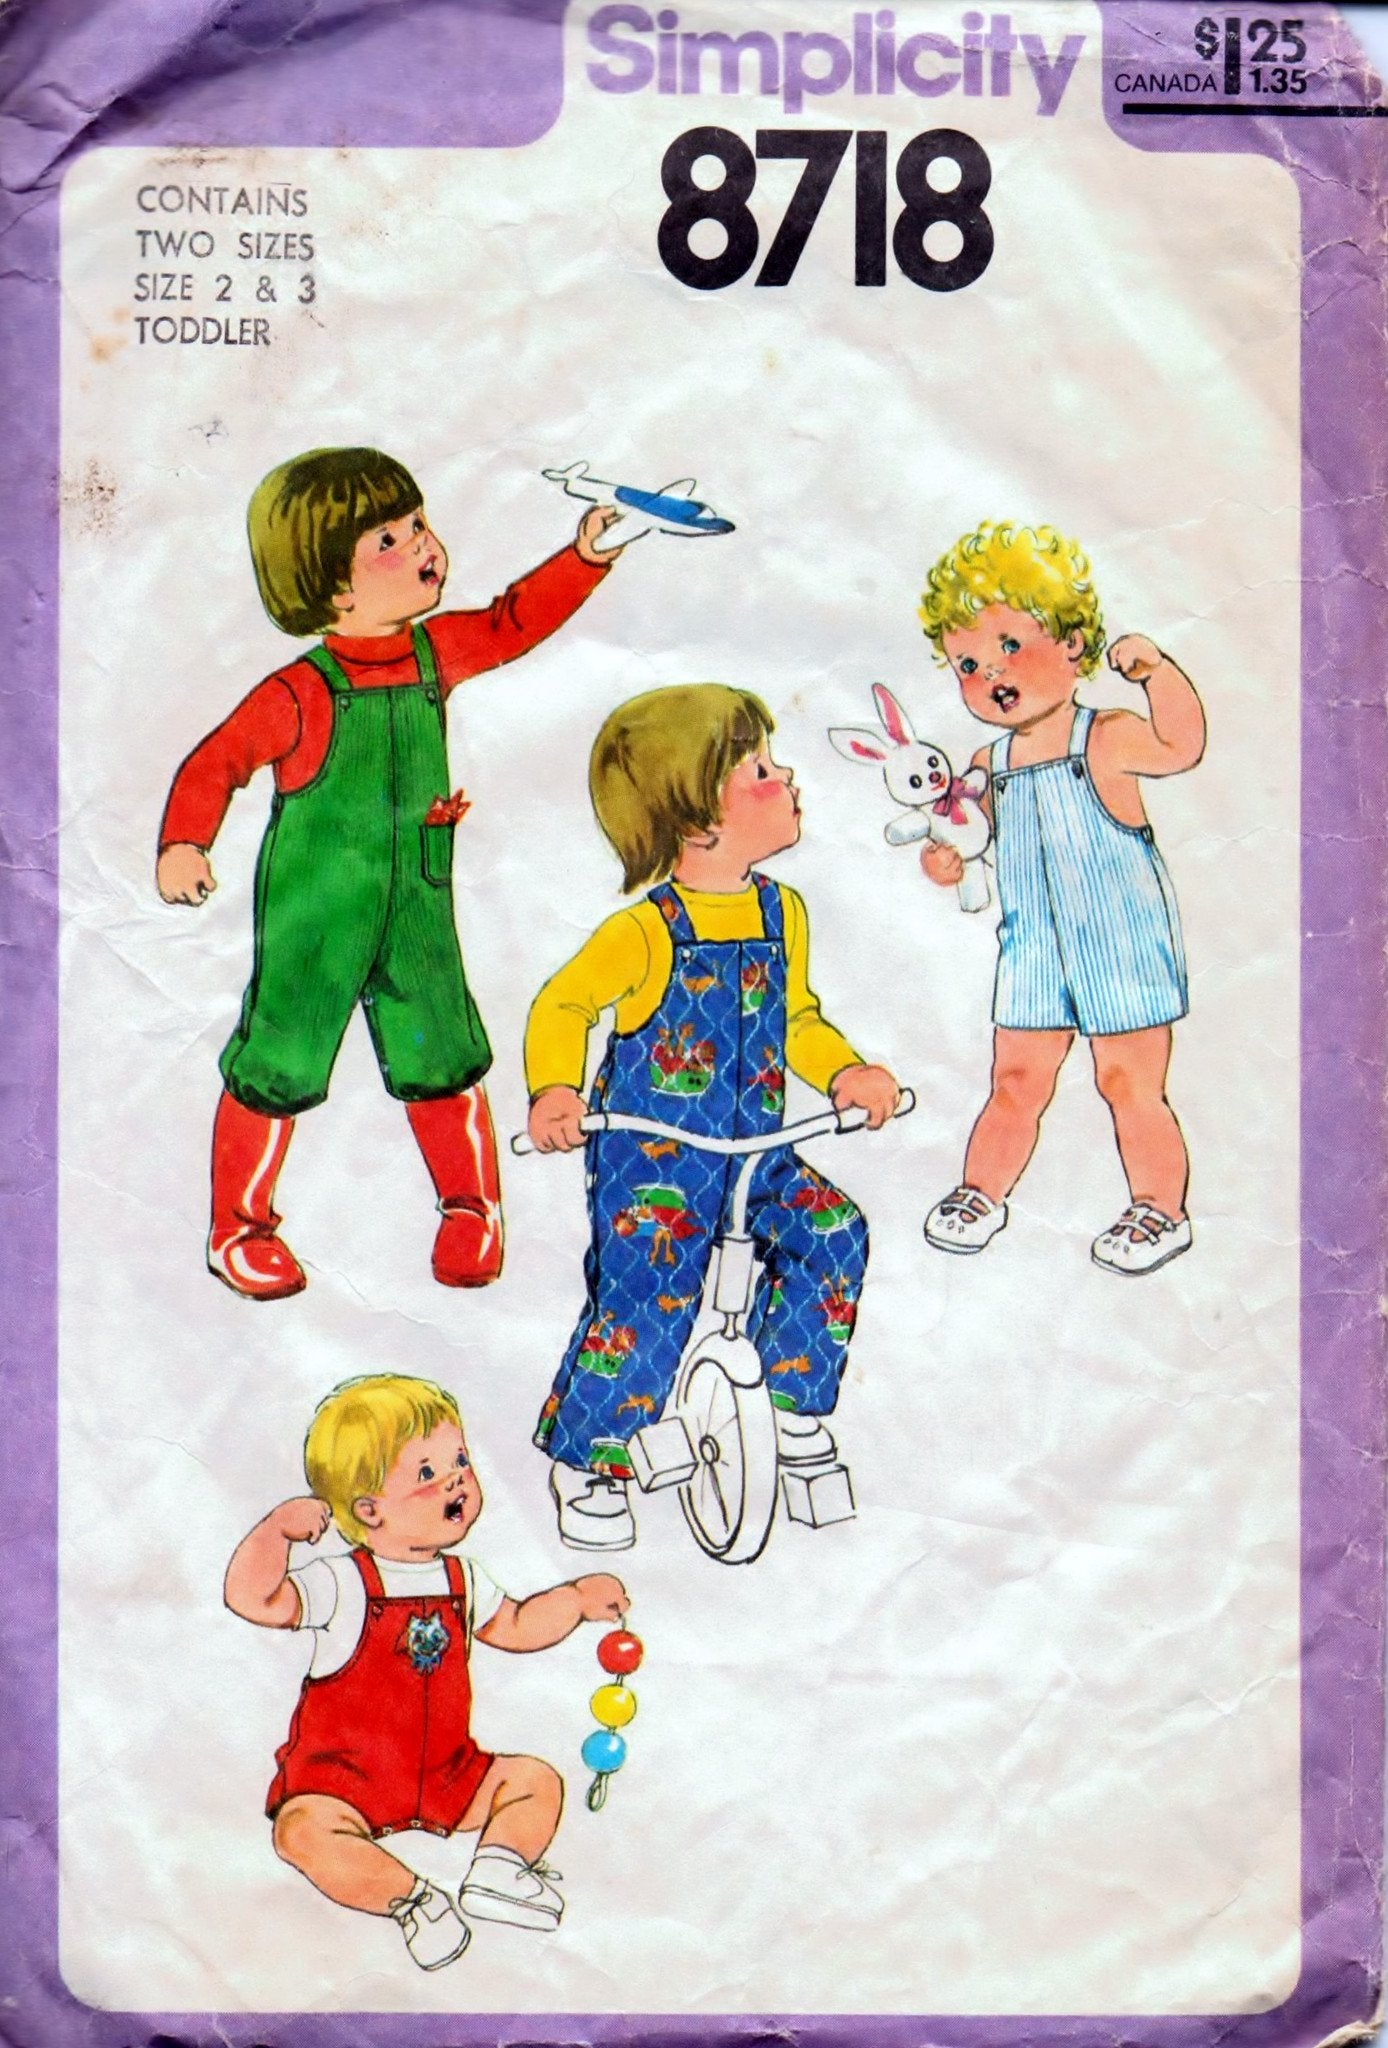 Simplicity 8718 Children Toddlers' Overalls Romper Vintage 1970's Sewing Pattern - VintageStitching - Vintage Sewing Patterns